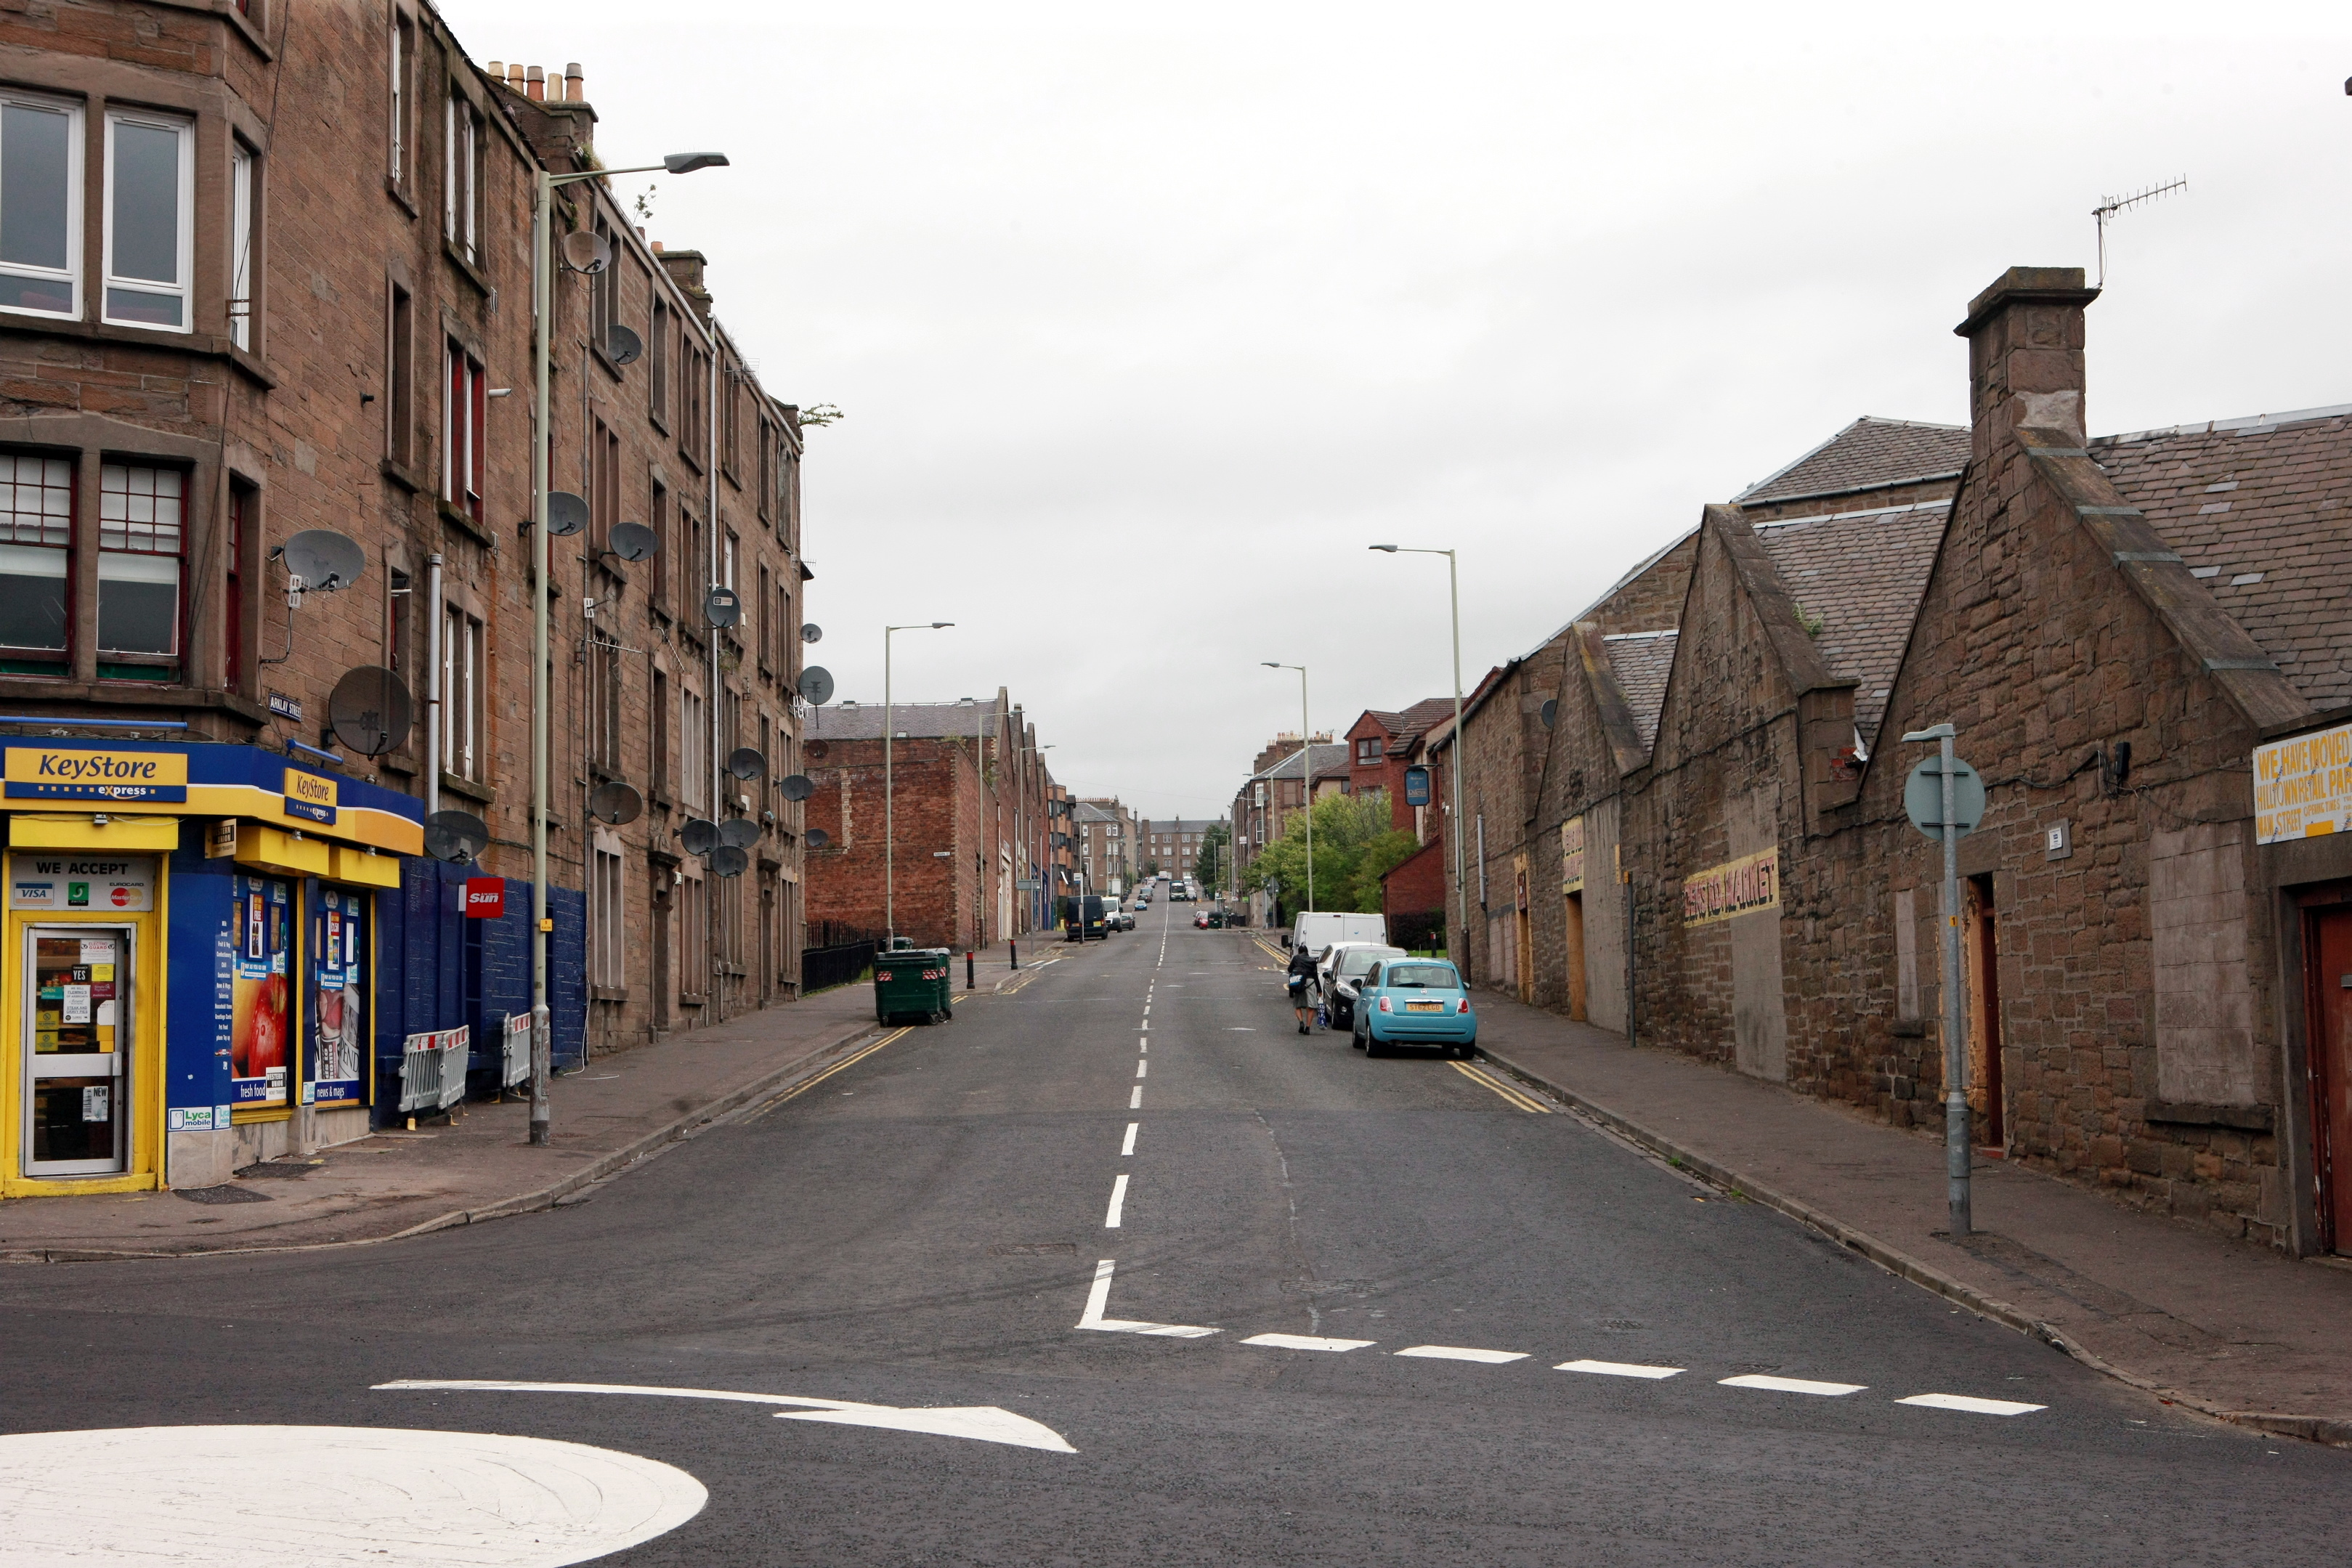 Arklay Street, as seen from its junction with Dens Road.